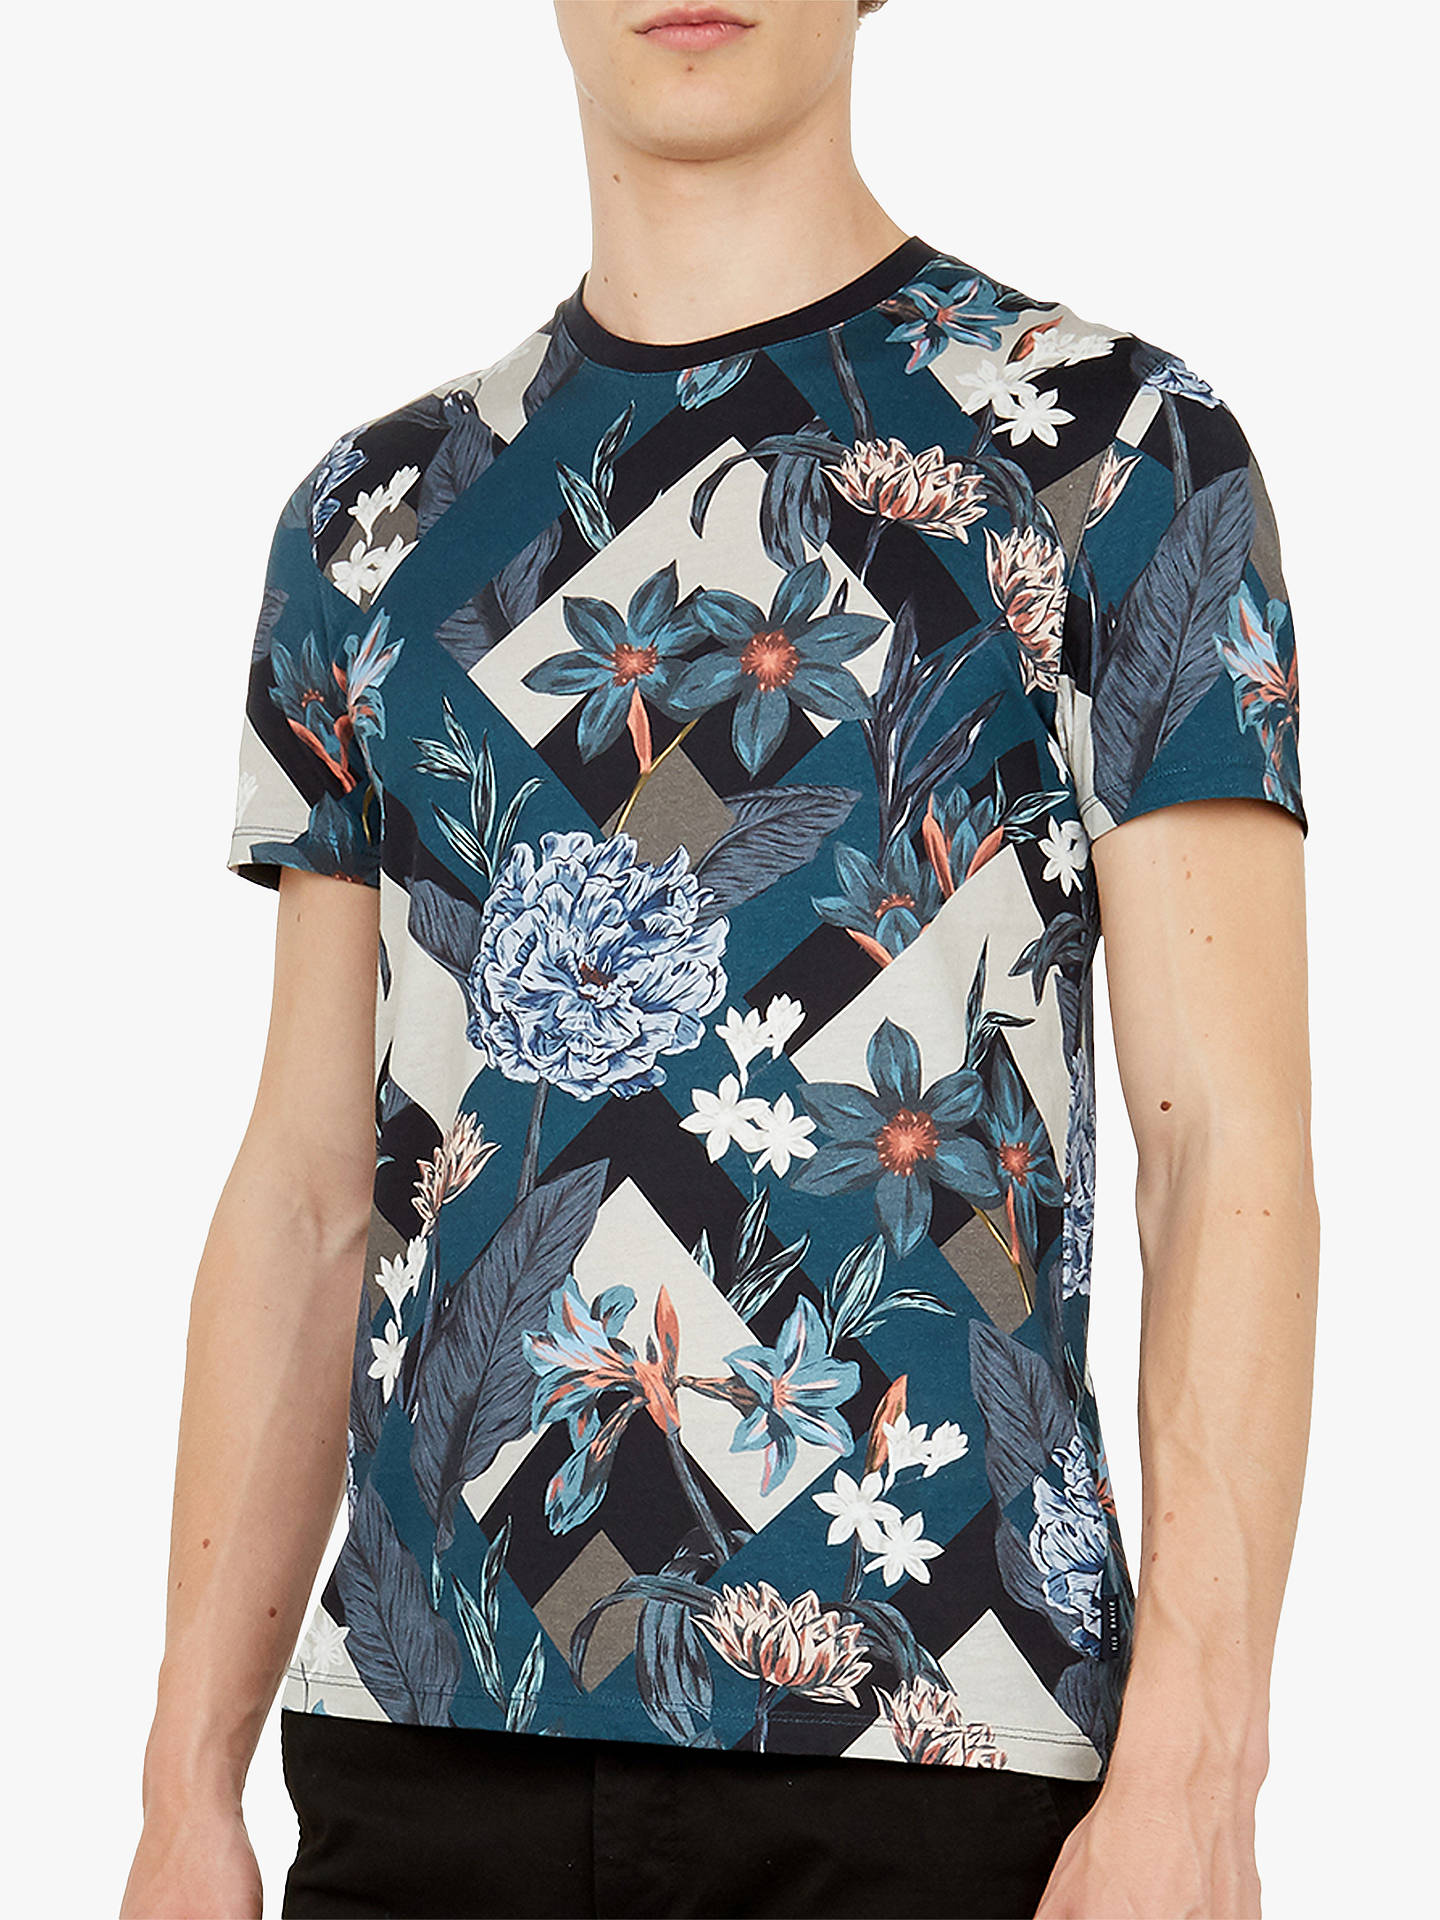 8a65a917b Buy Ted Baker Jolly Abstract Floral Print Cotton T-Shirt